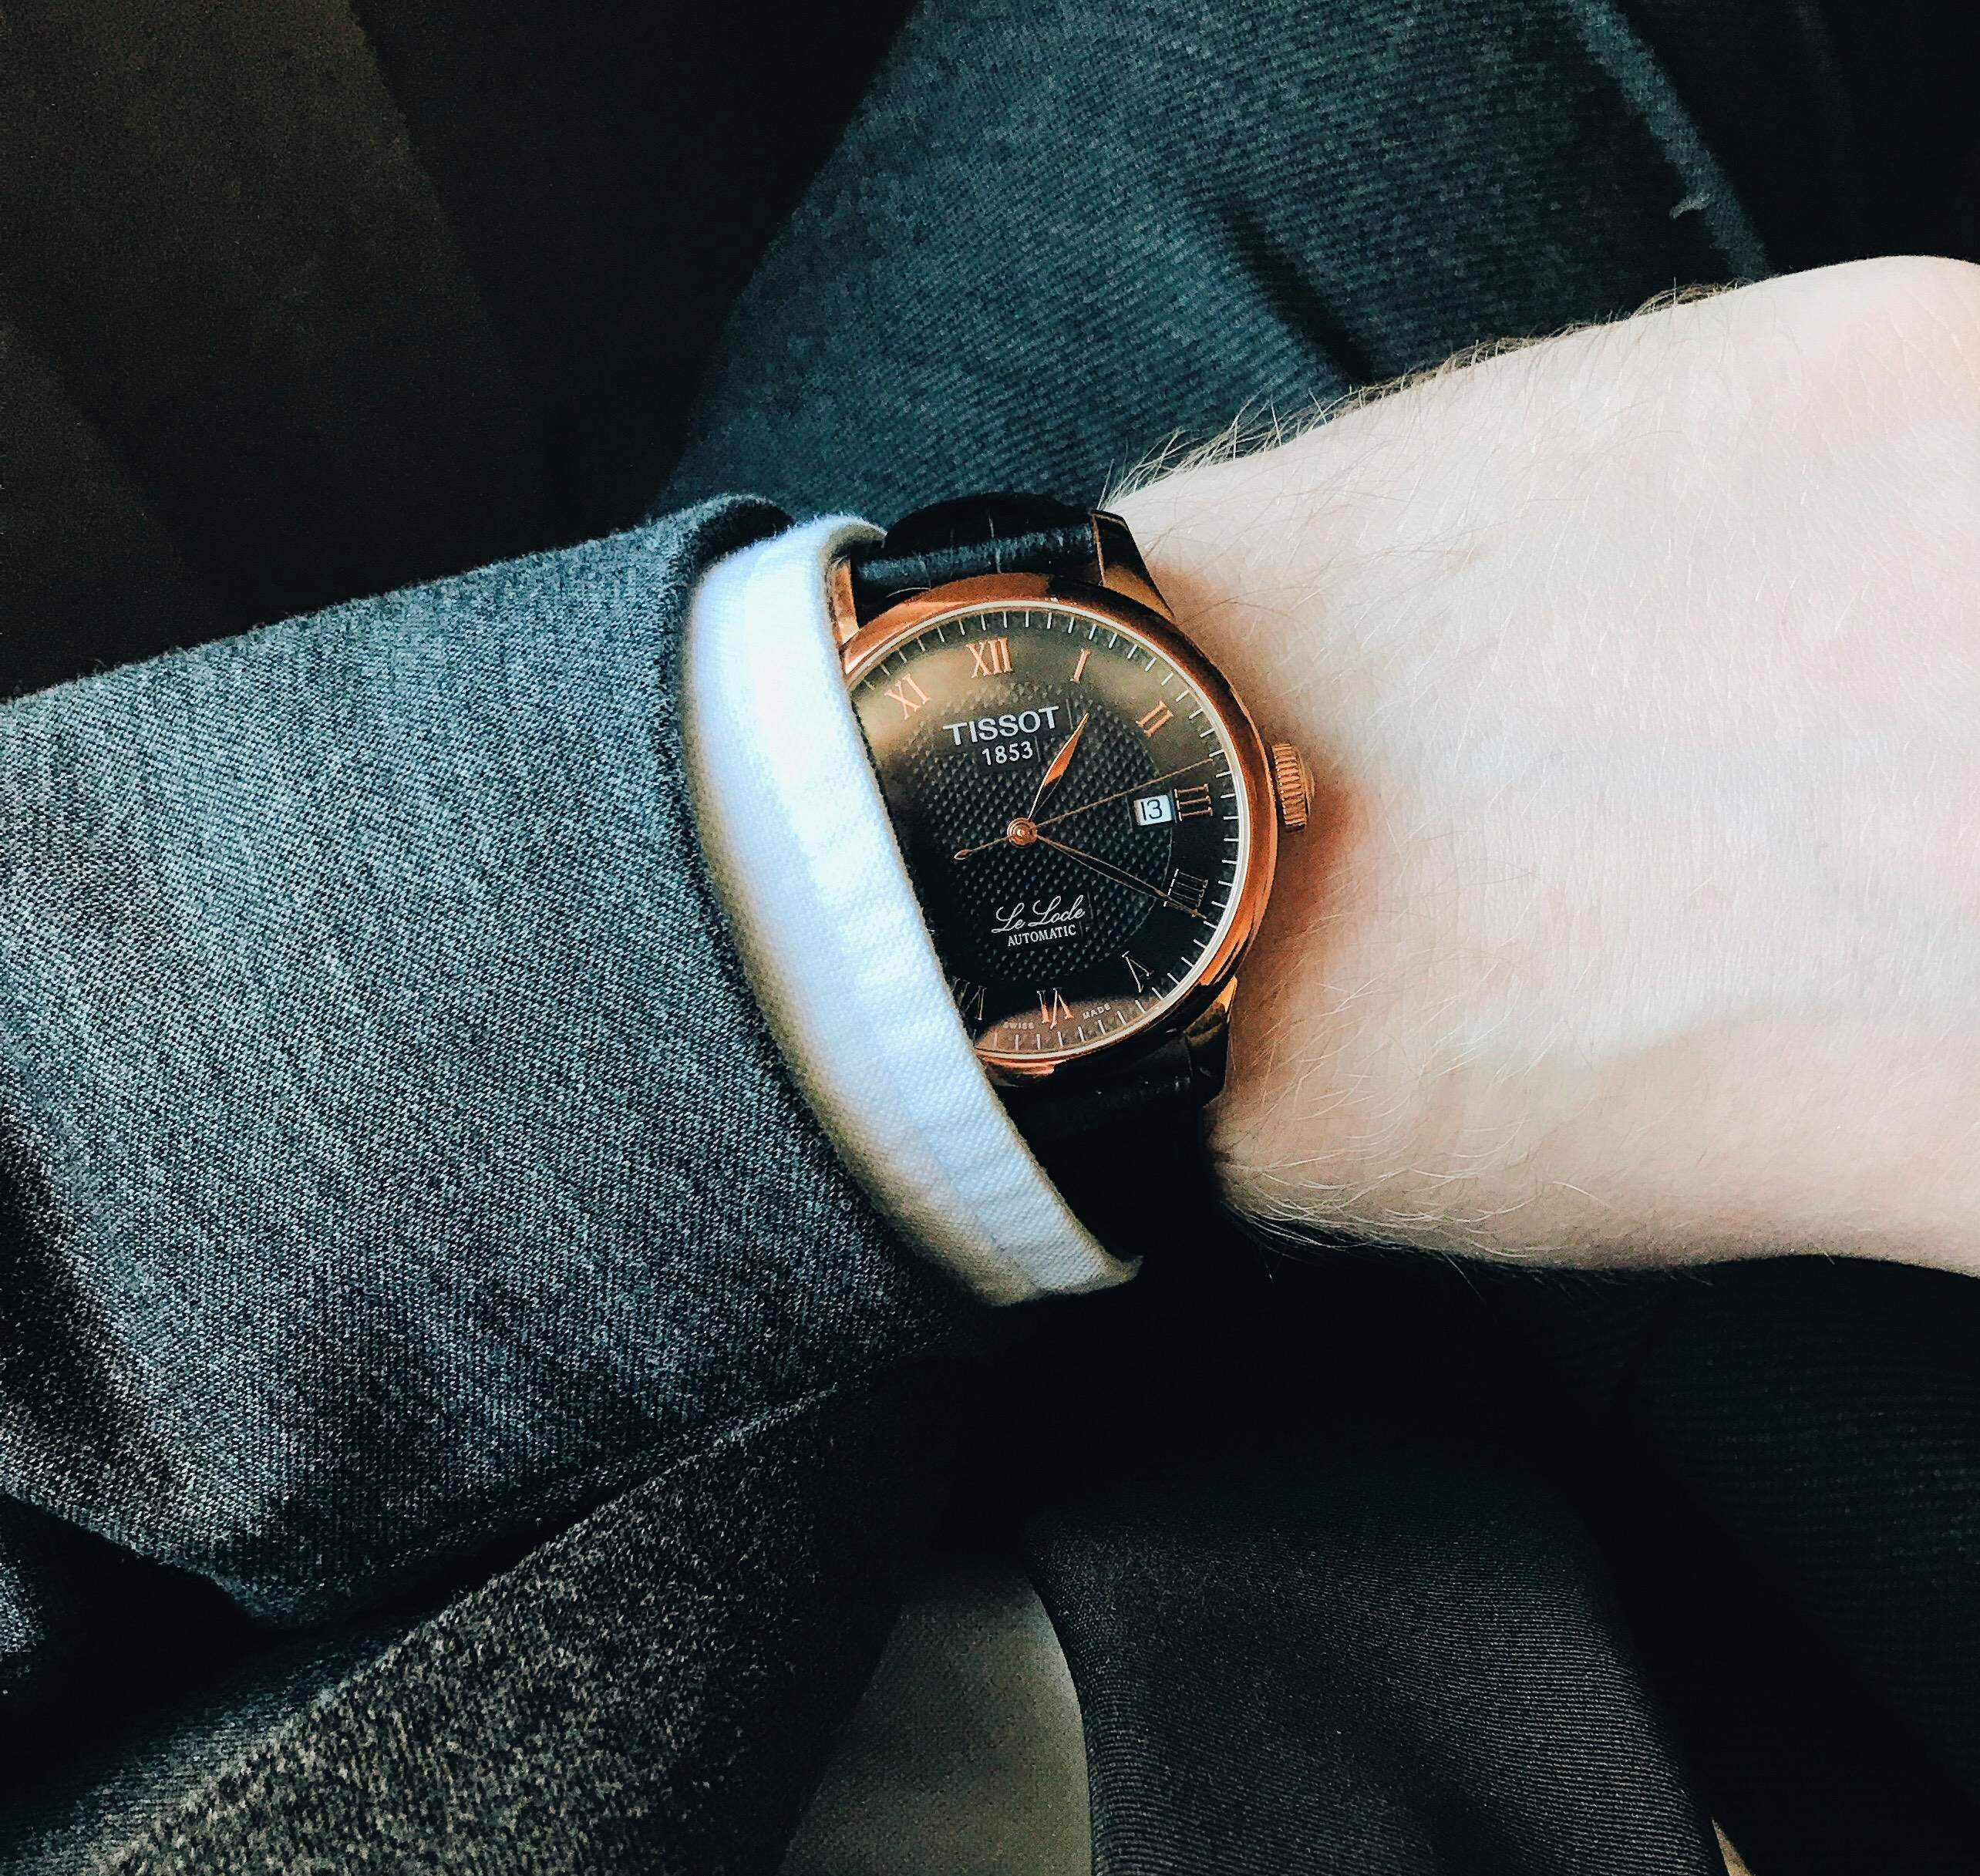 Chrono watch with shirt and suit